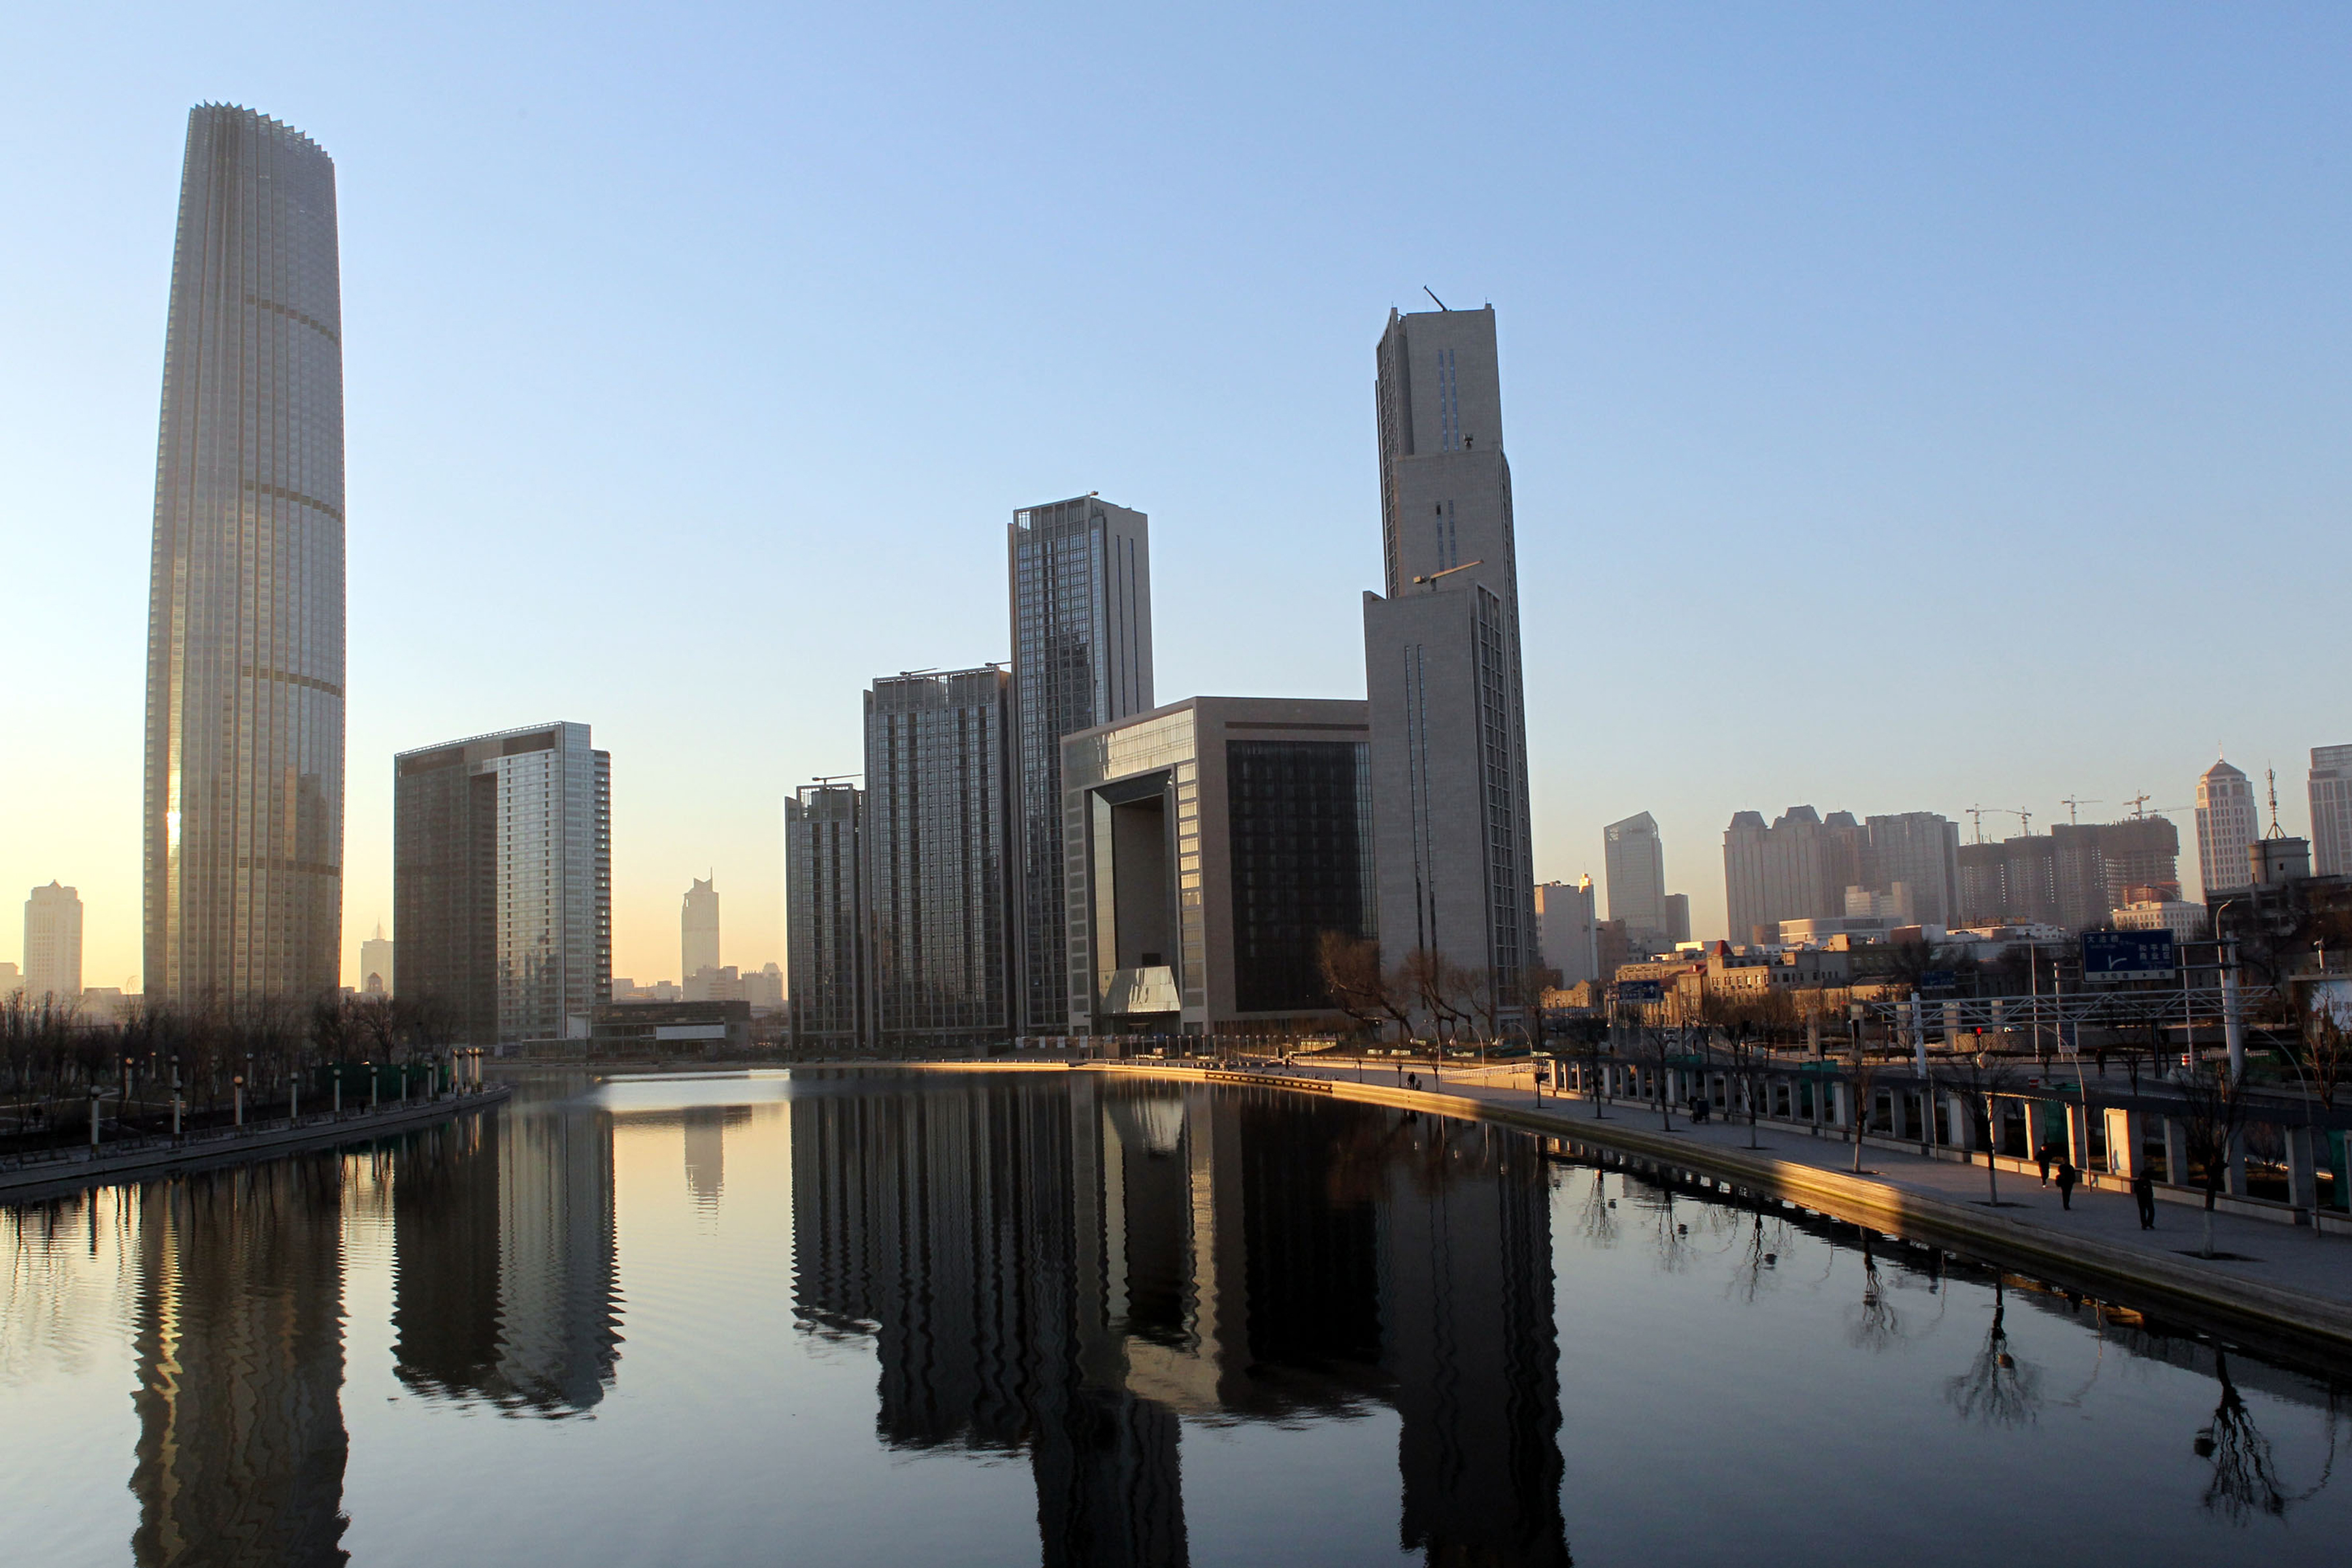 Haihe River, Tianjin World Financial Center on the left, St. Regis Tianjin (square building)